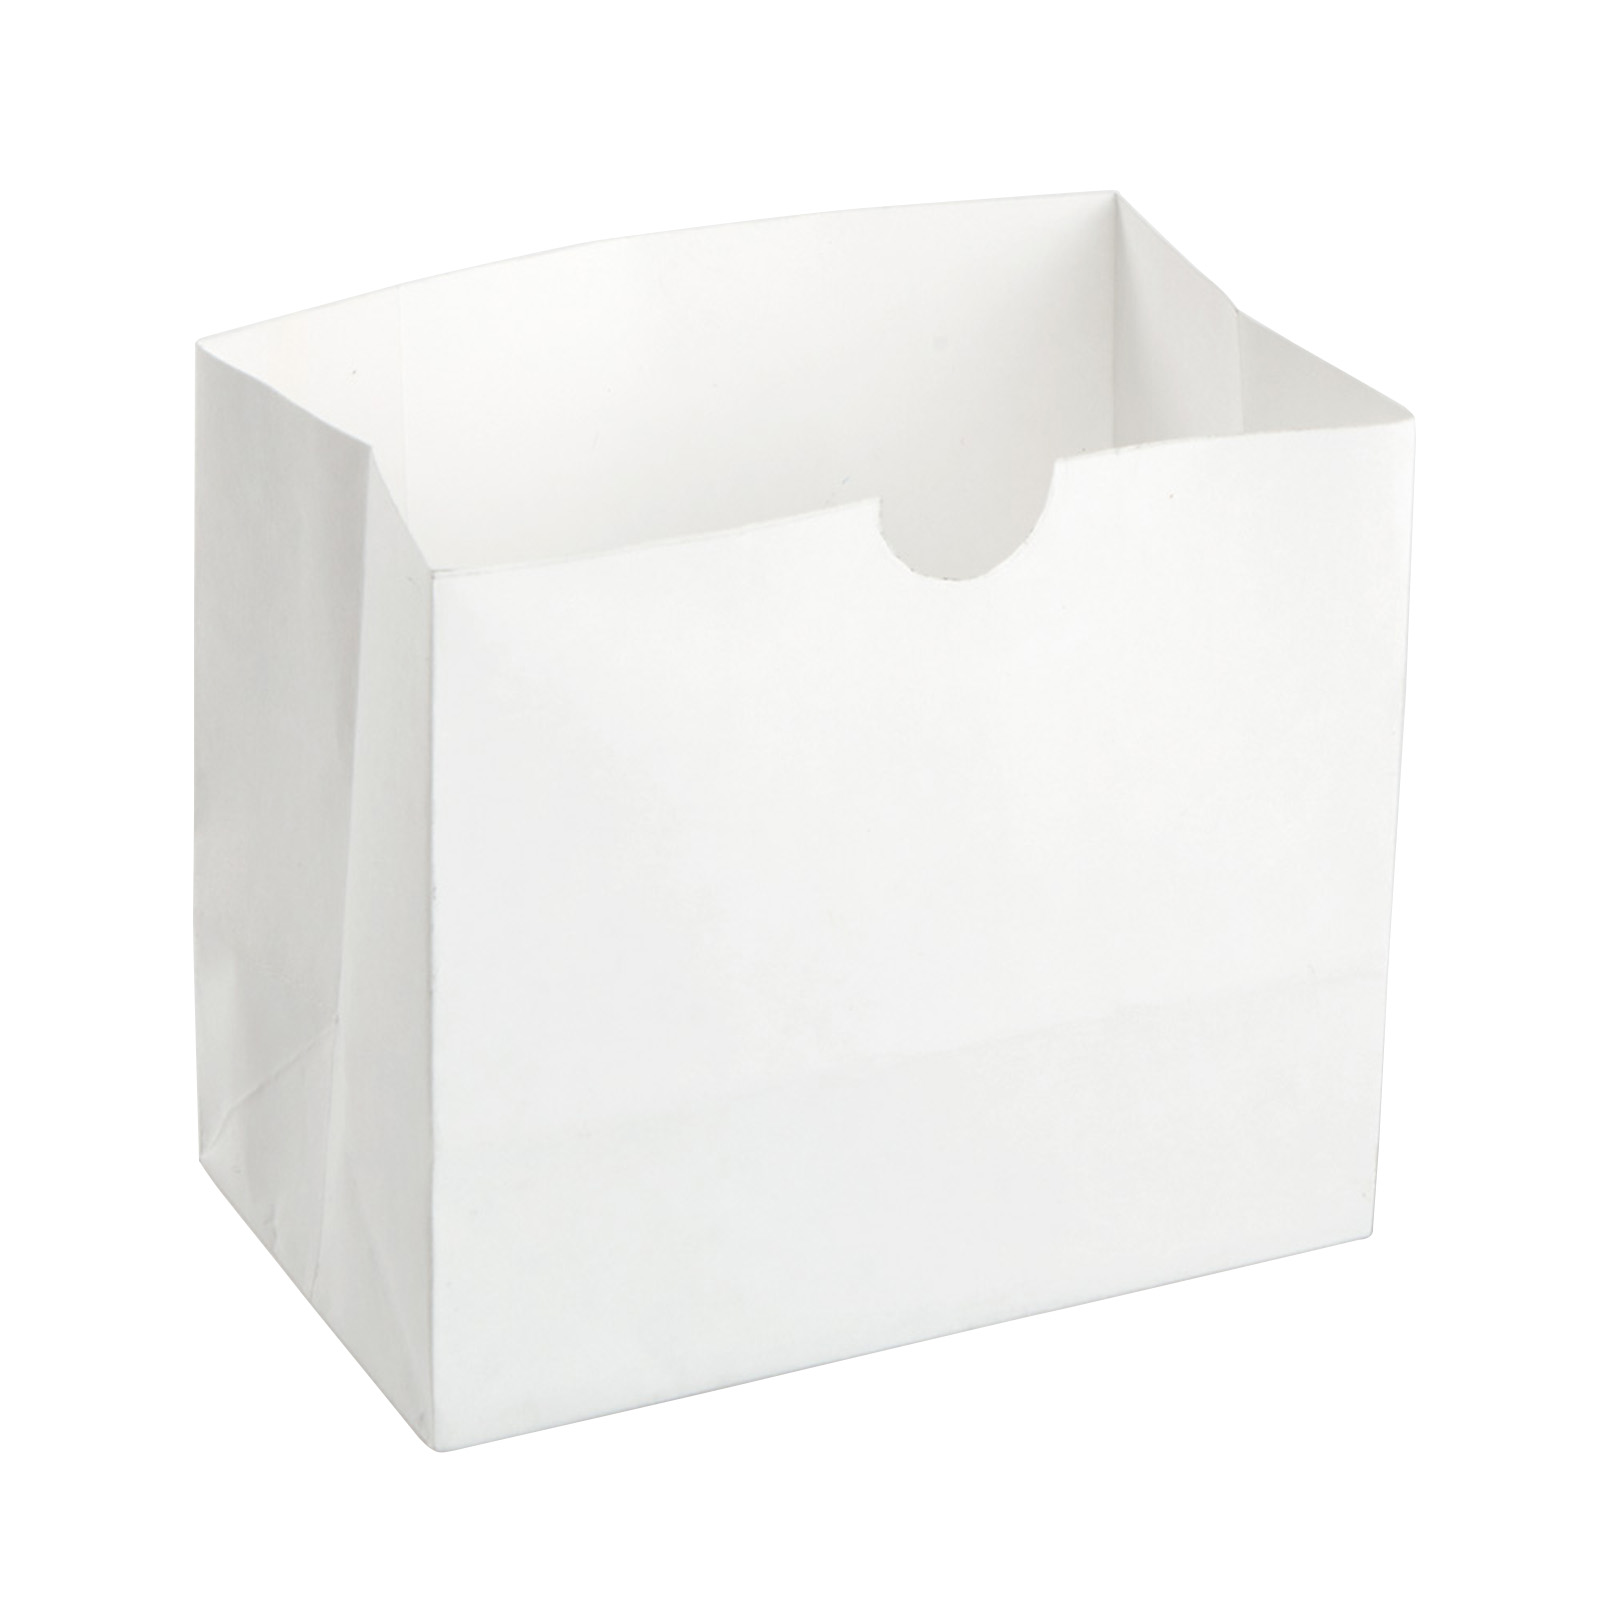 American Metalcraft SBW4 disposable take out container